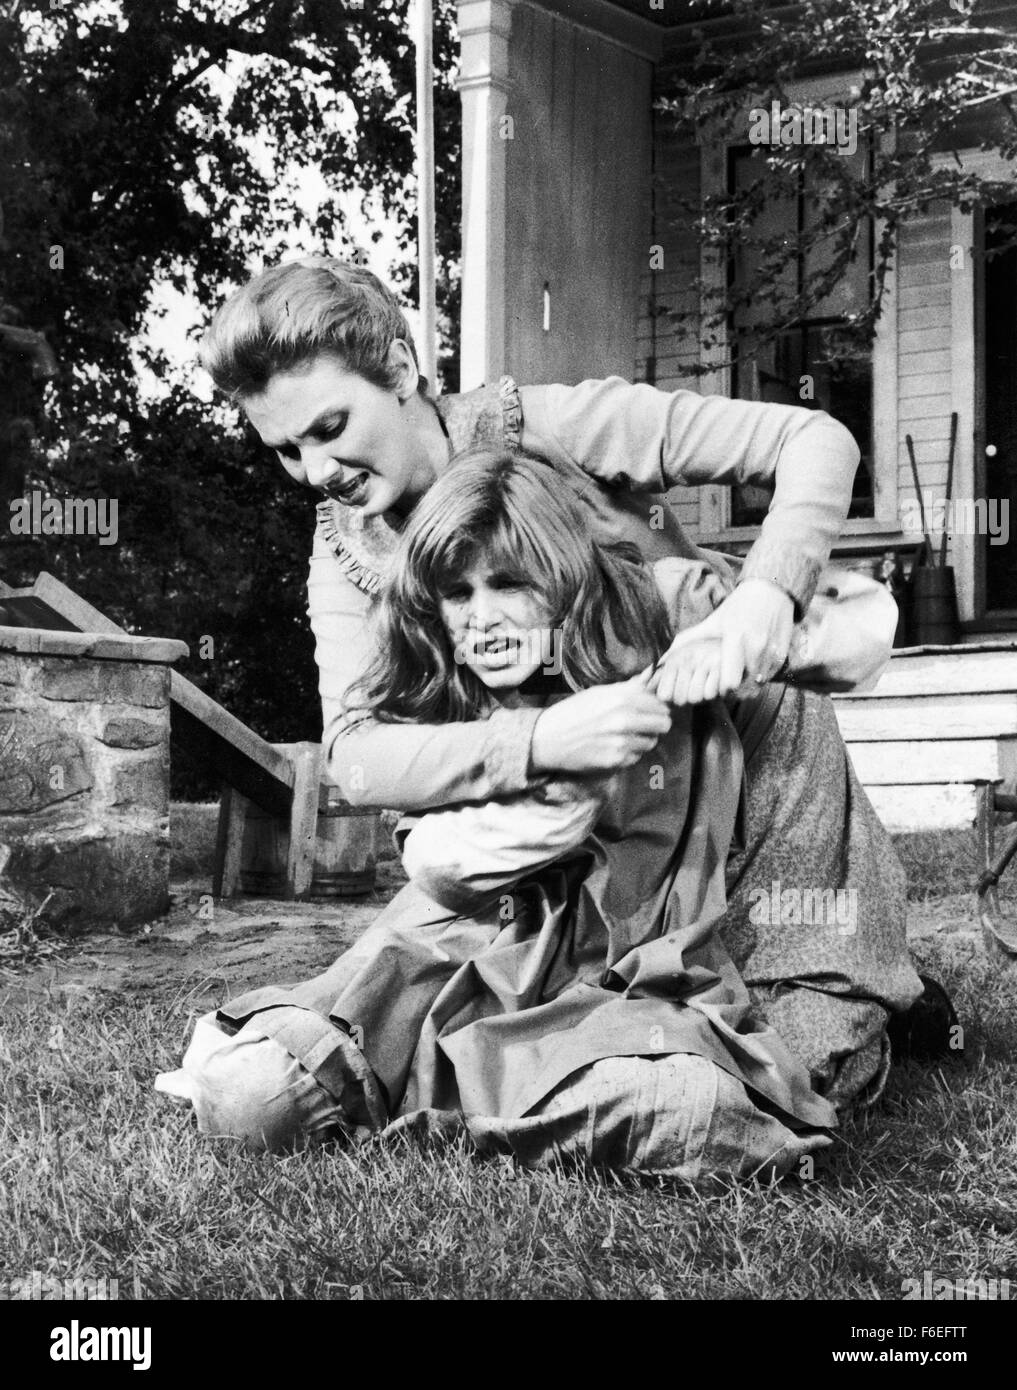 Jan 15, 1962; USA; RELEASE DATE: 1962. DIRECTOR: Arthur Penn. STUDIO: MGM. PLOT: Young Helen Keller, blind, deaf, - Stock Image